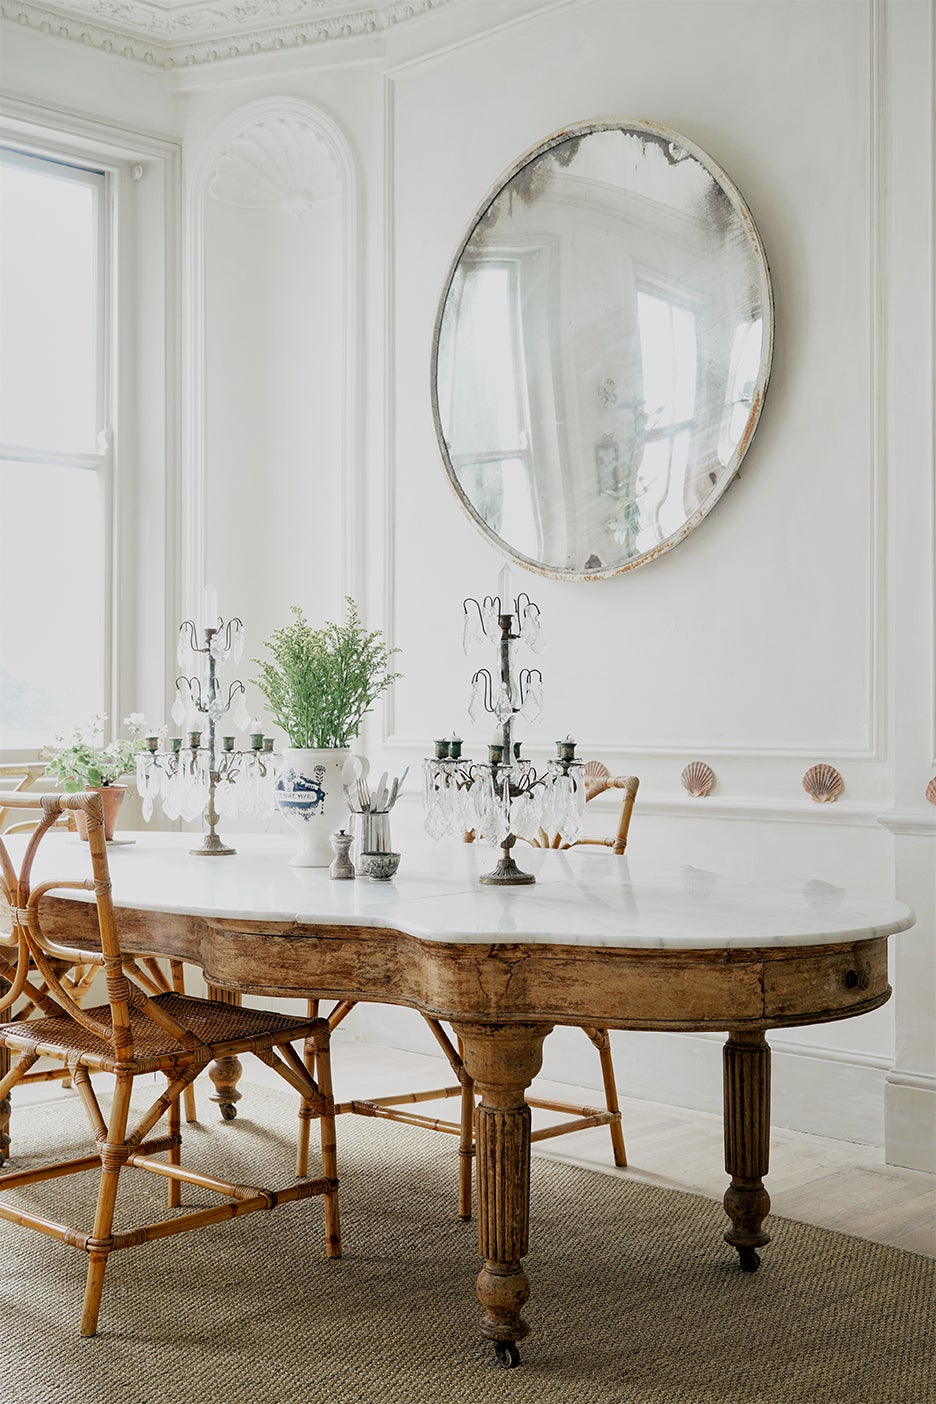 Dining Table, L'Antiques.